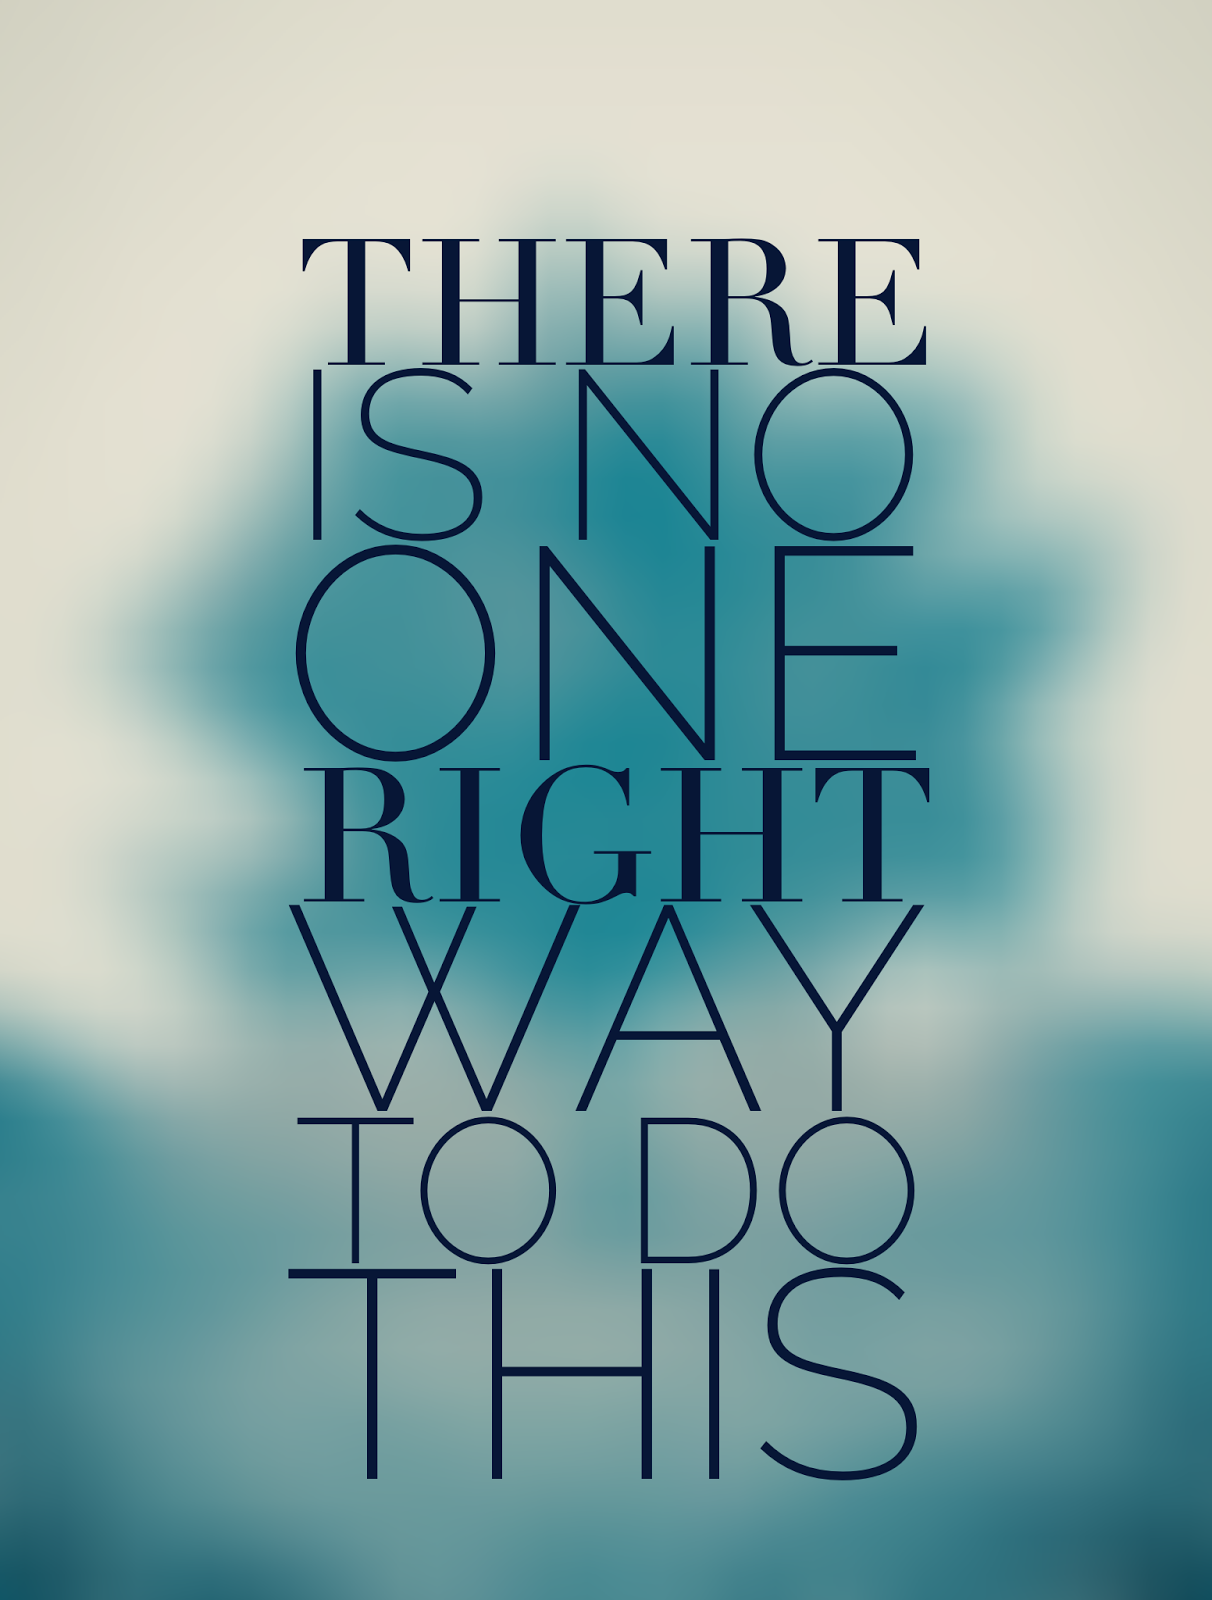 """3Rs Blog Credo: """"There is no one right way to do this"""""""